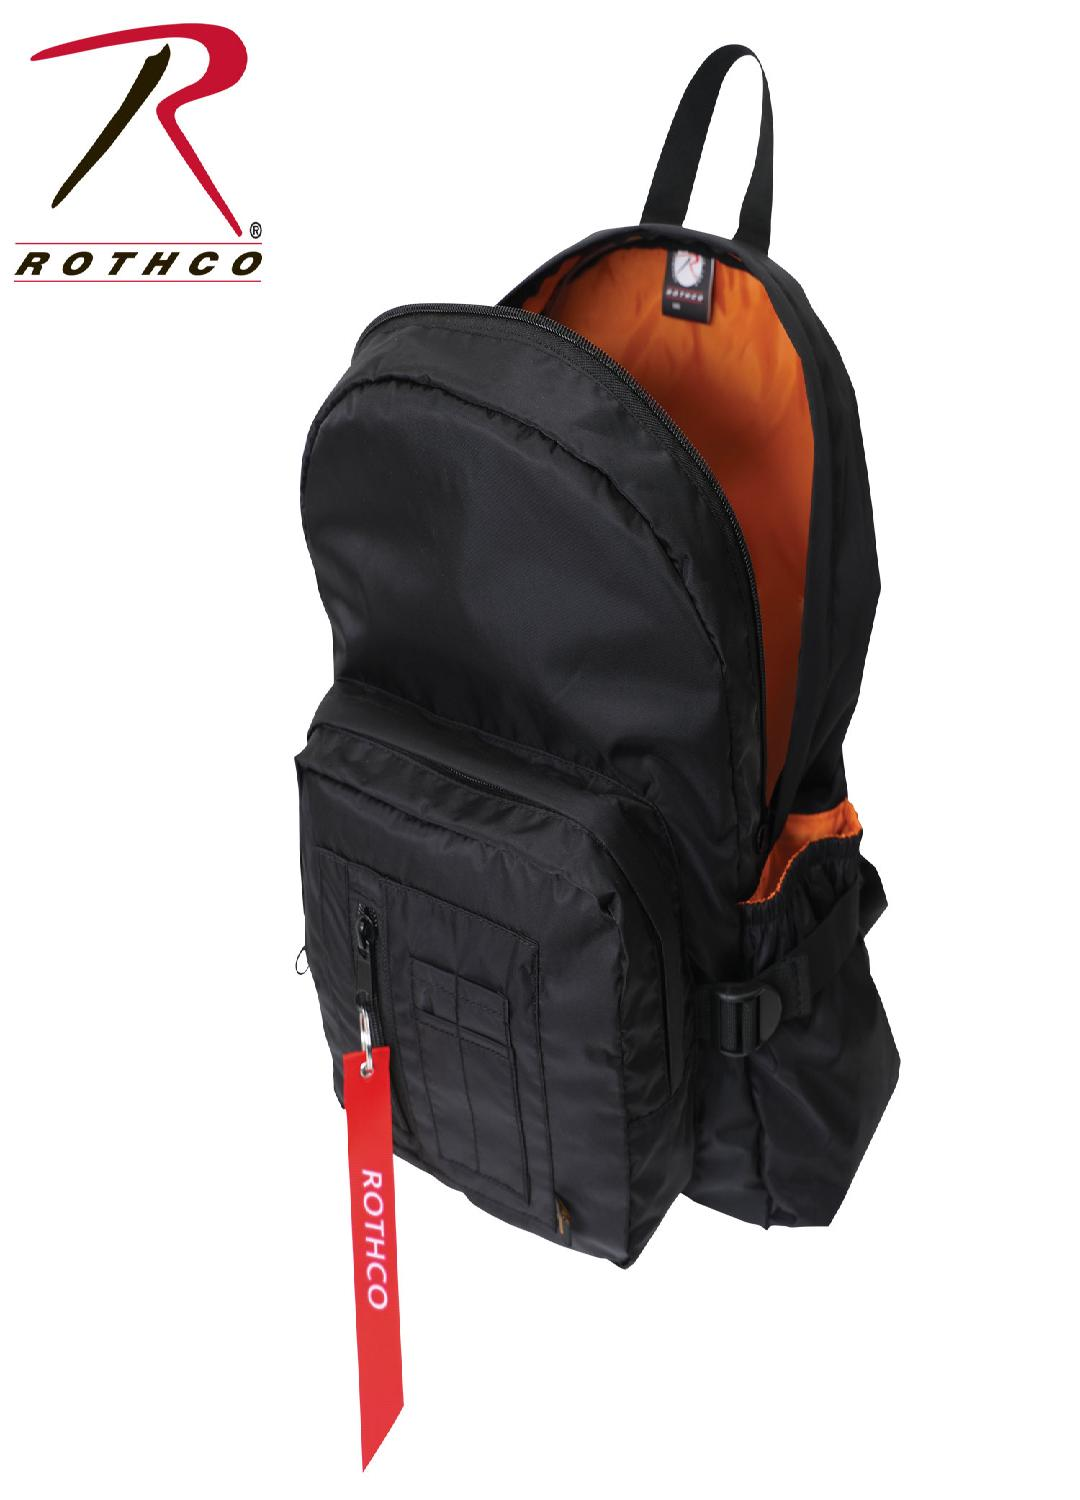 Rothco MA-1 Bomber Backpack - Black